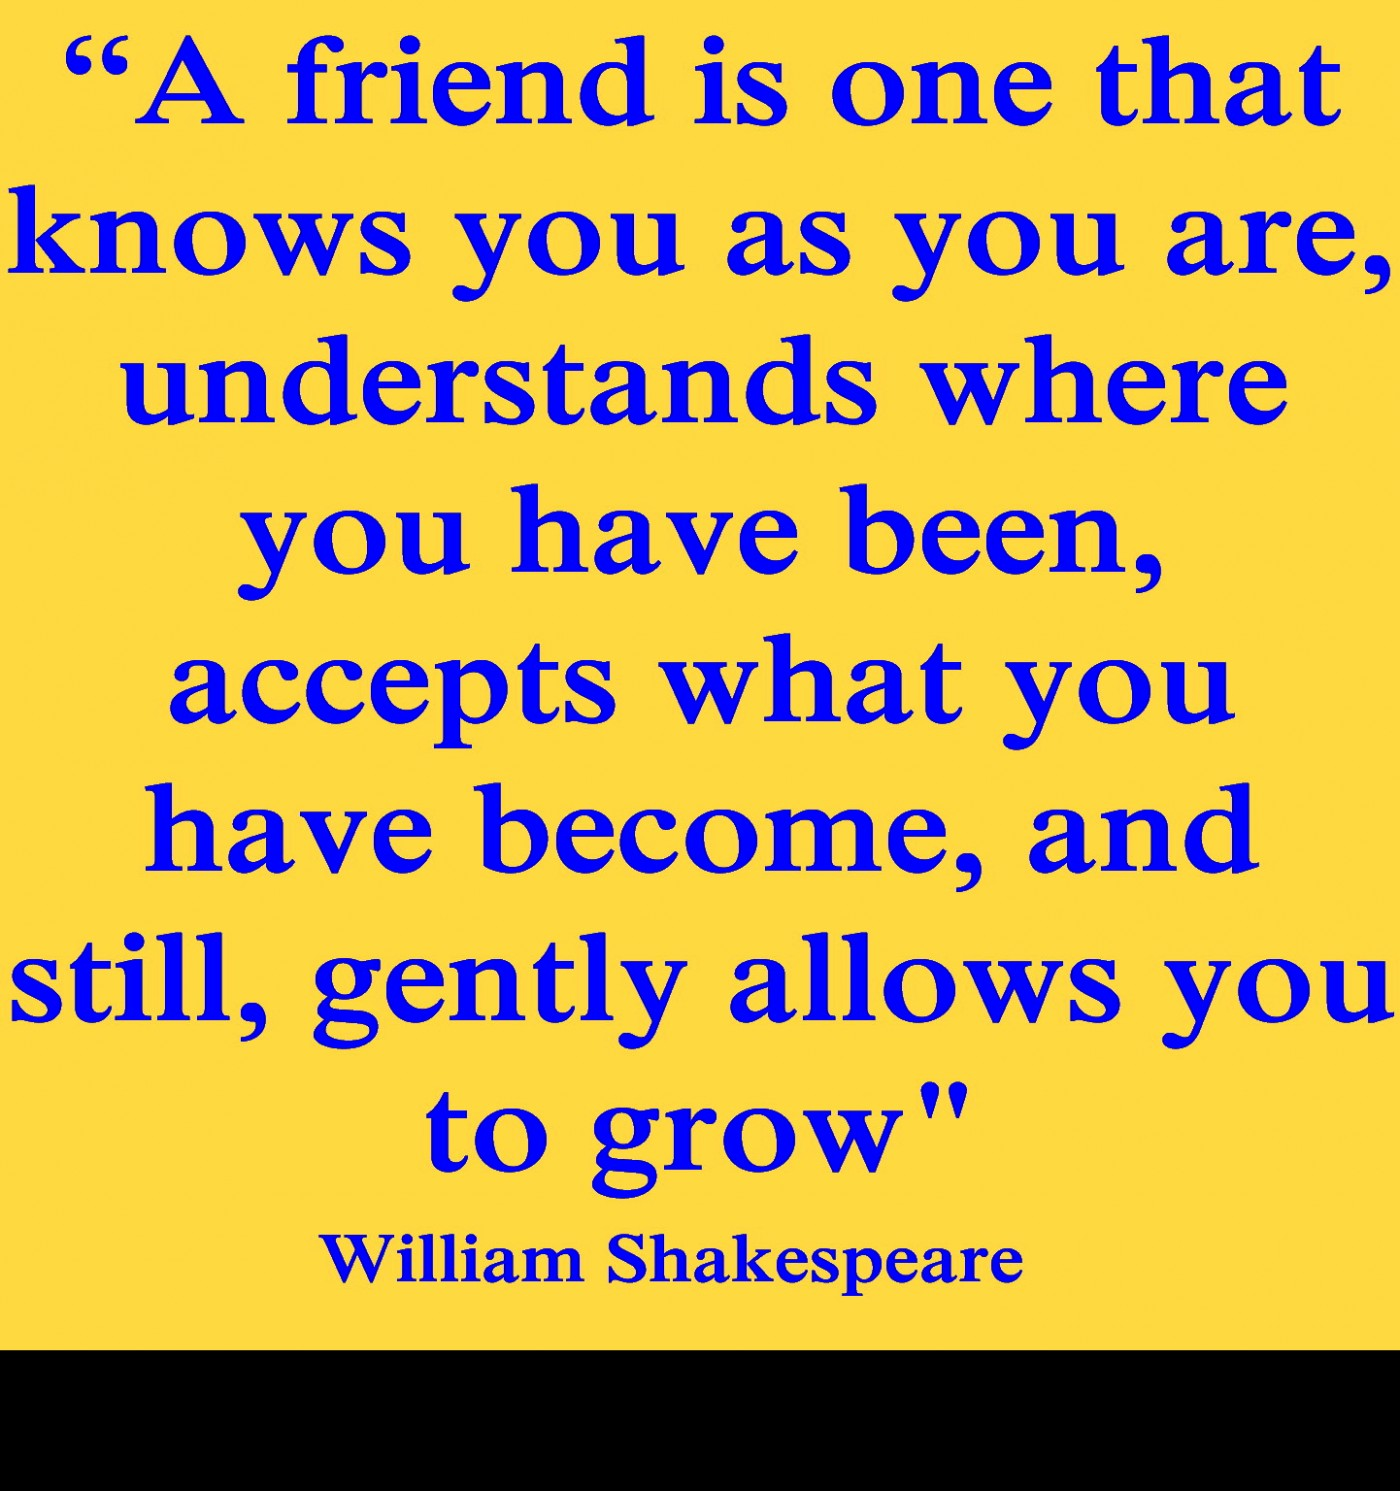 002 Qualities Of Good Friends Essay Lqs178 Amazing Friendship My Best Friend Should Have A Expository 1400